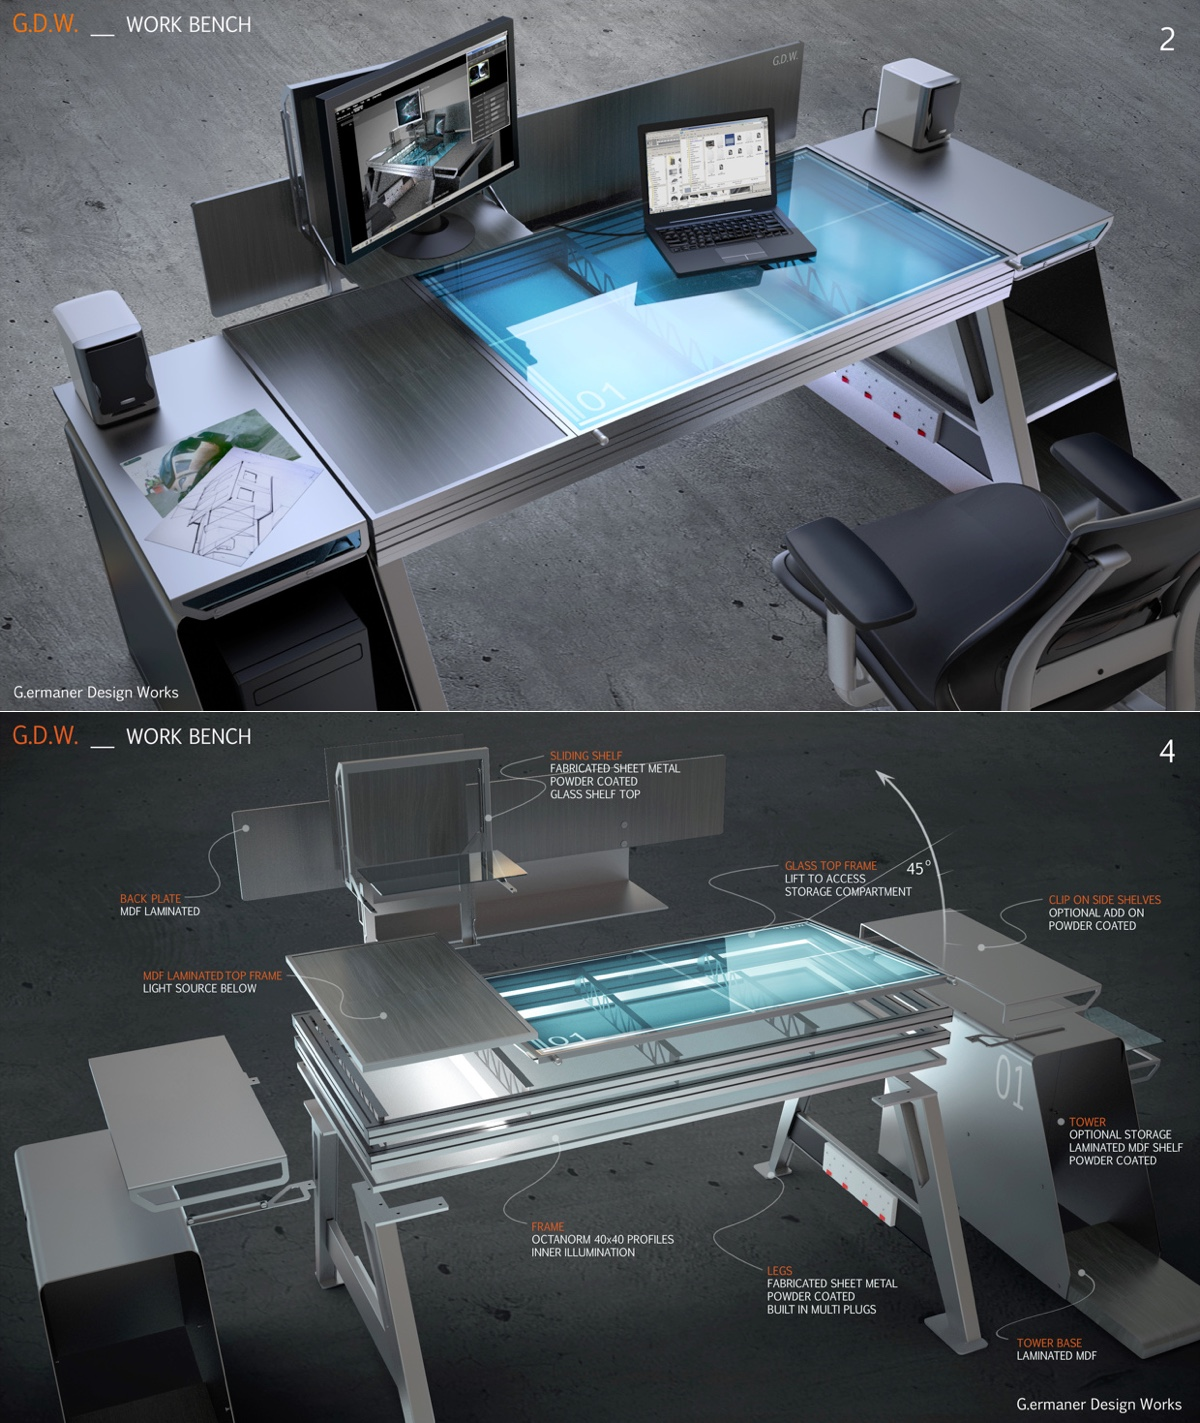 Modern Work Bench - Creative and inspirational workspaces